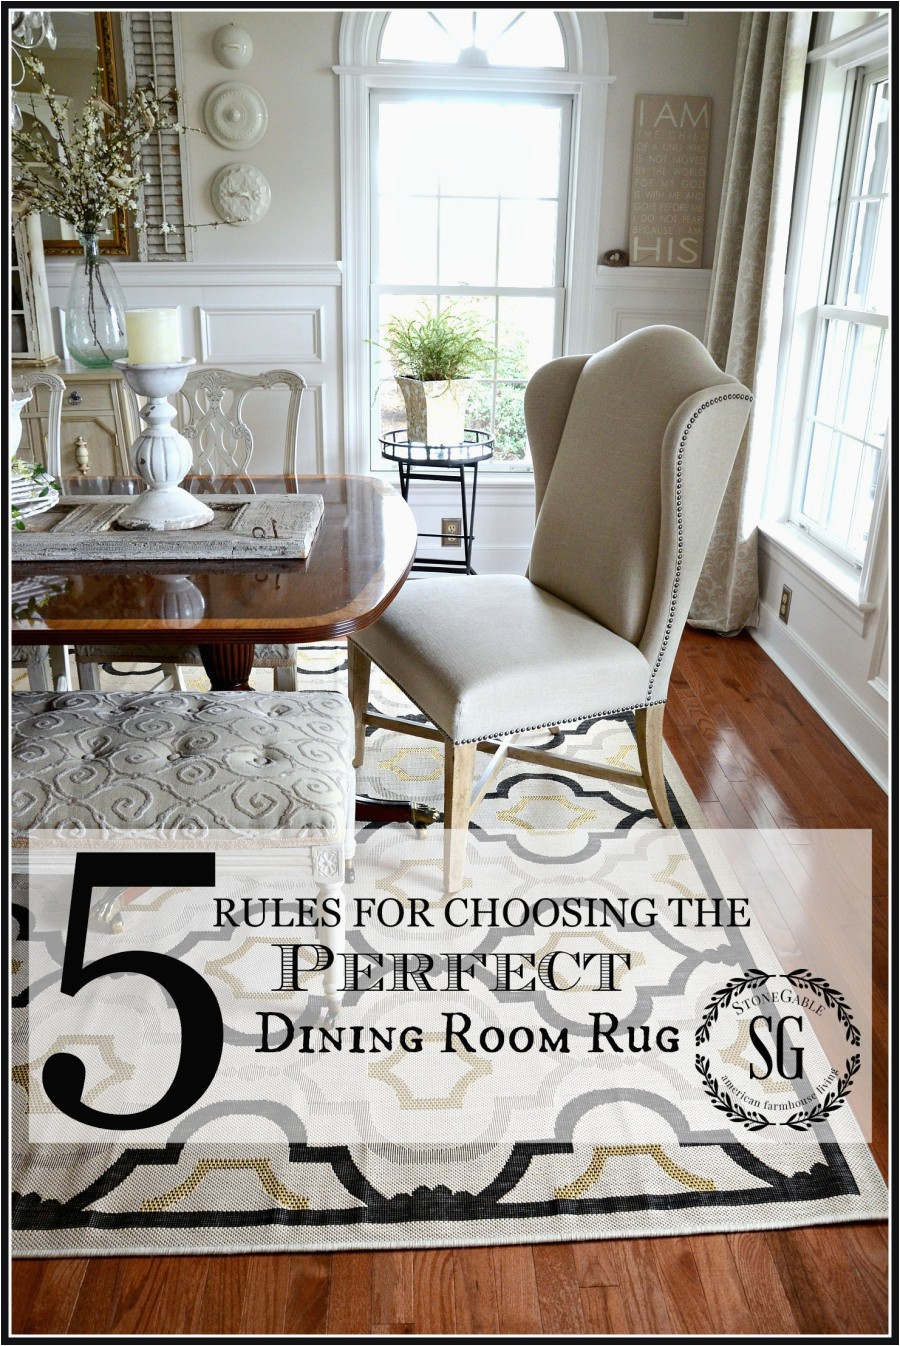 5 RULES FOR CHOOSING THE PERFECT DINING ROOM RUG No nonsense sensibe advice for choosing the right rug stonegableblog